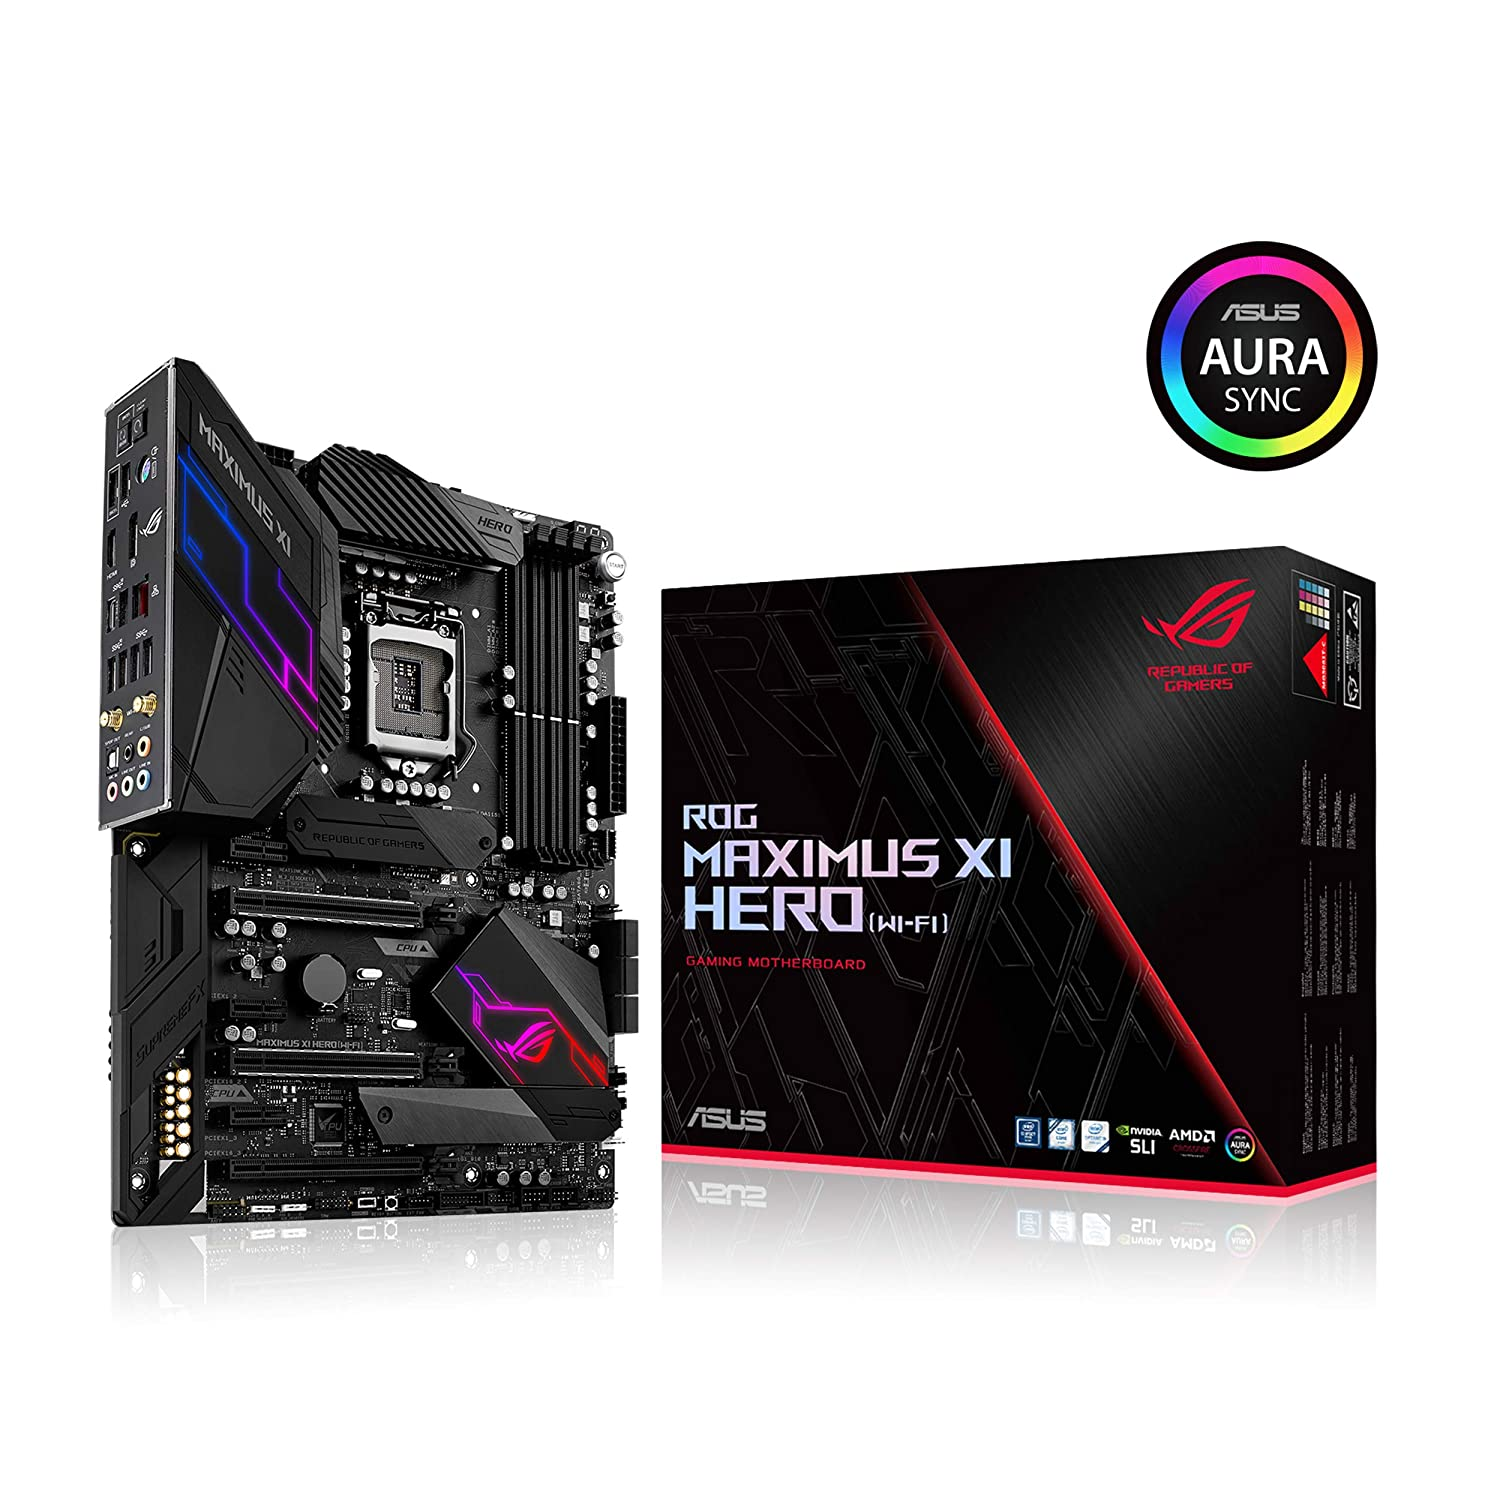 81Du2vIqOmL. SL1500  - The Best Gaming Motherboards in 2020 - Buying Guide